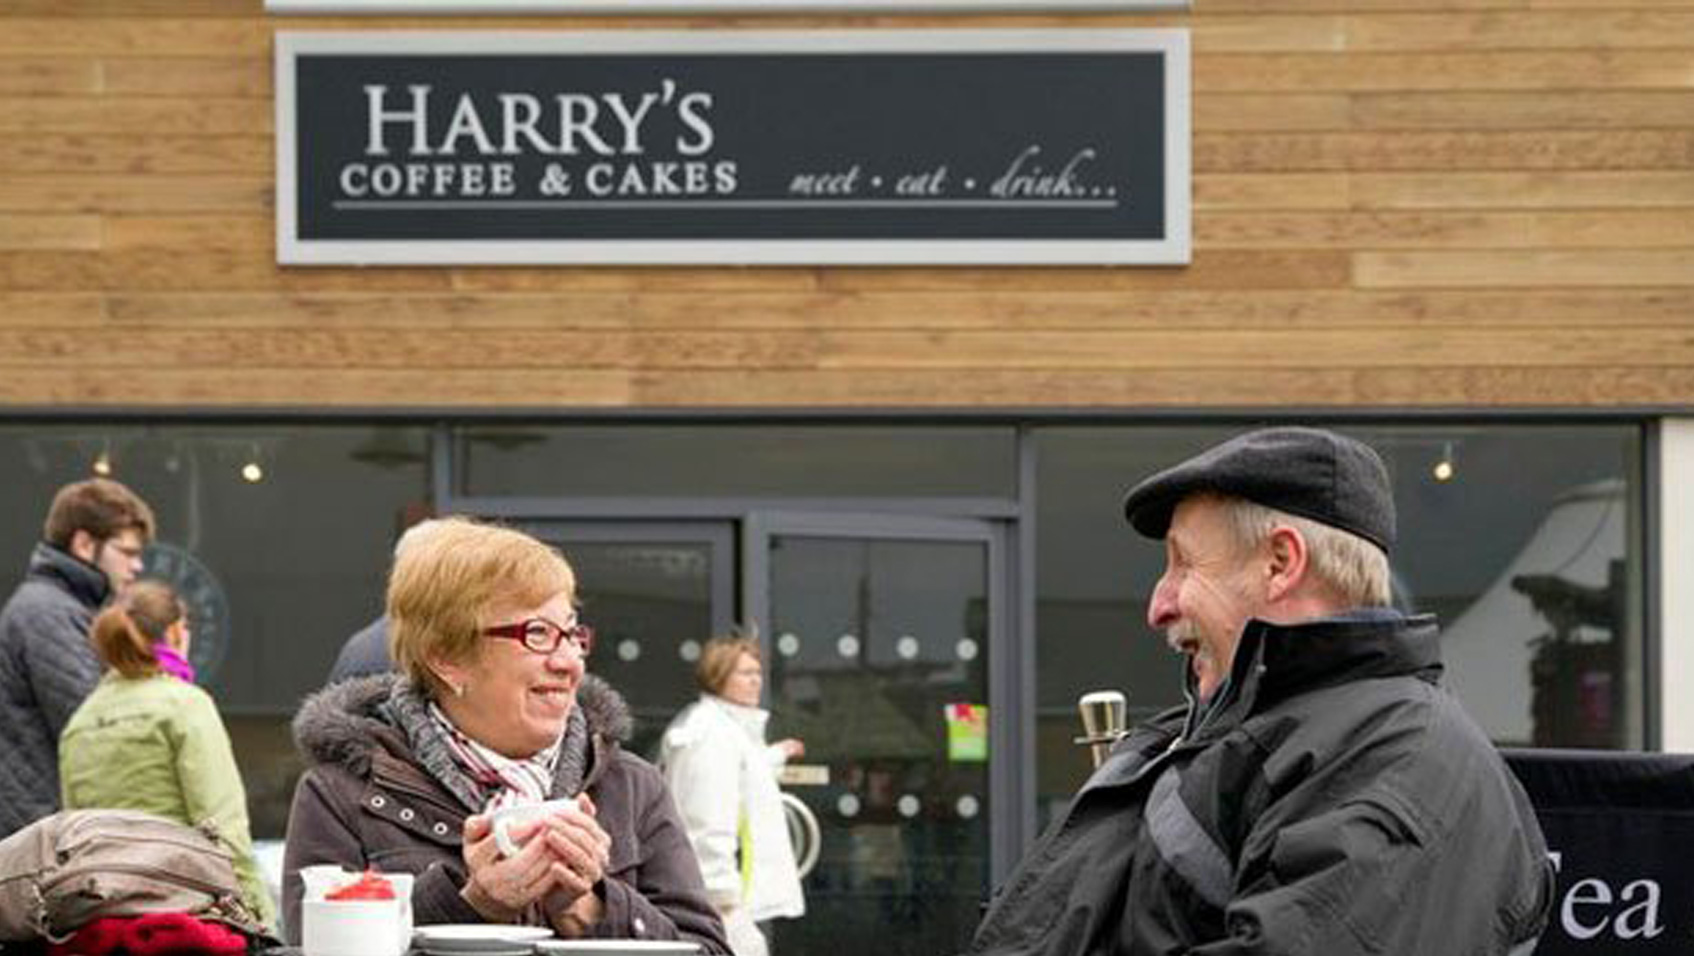 Harry's Coffee and Cakes